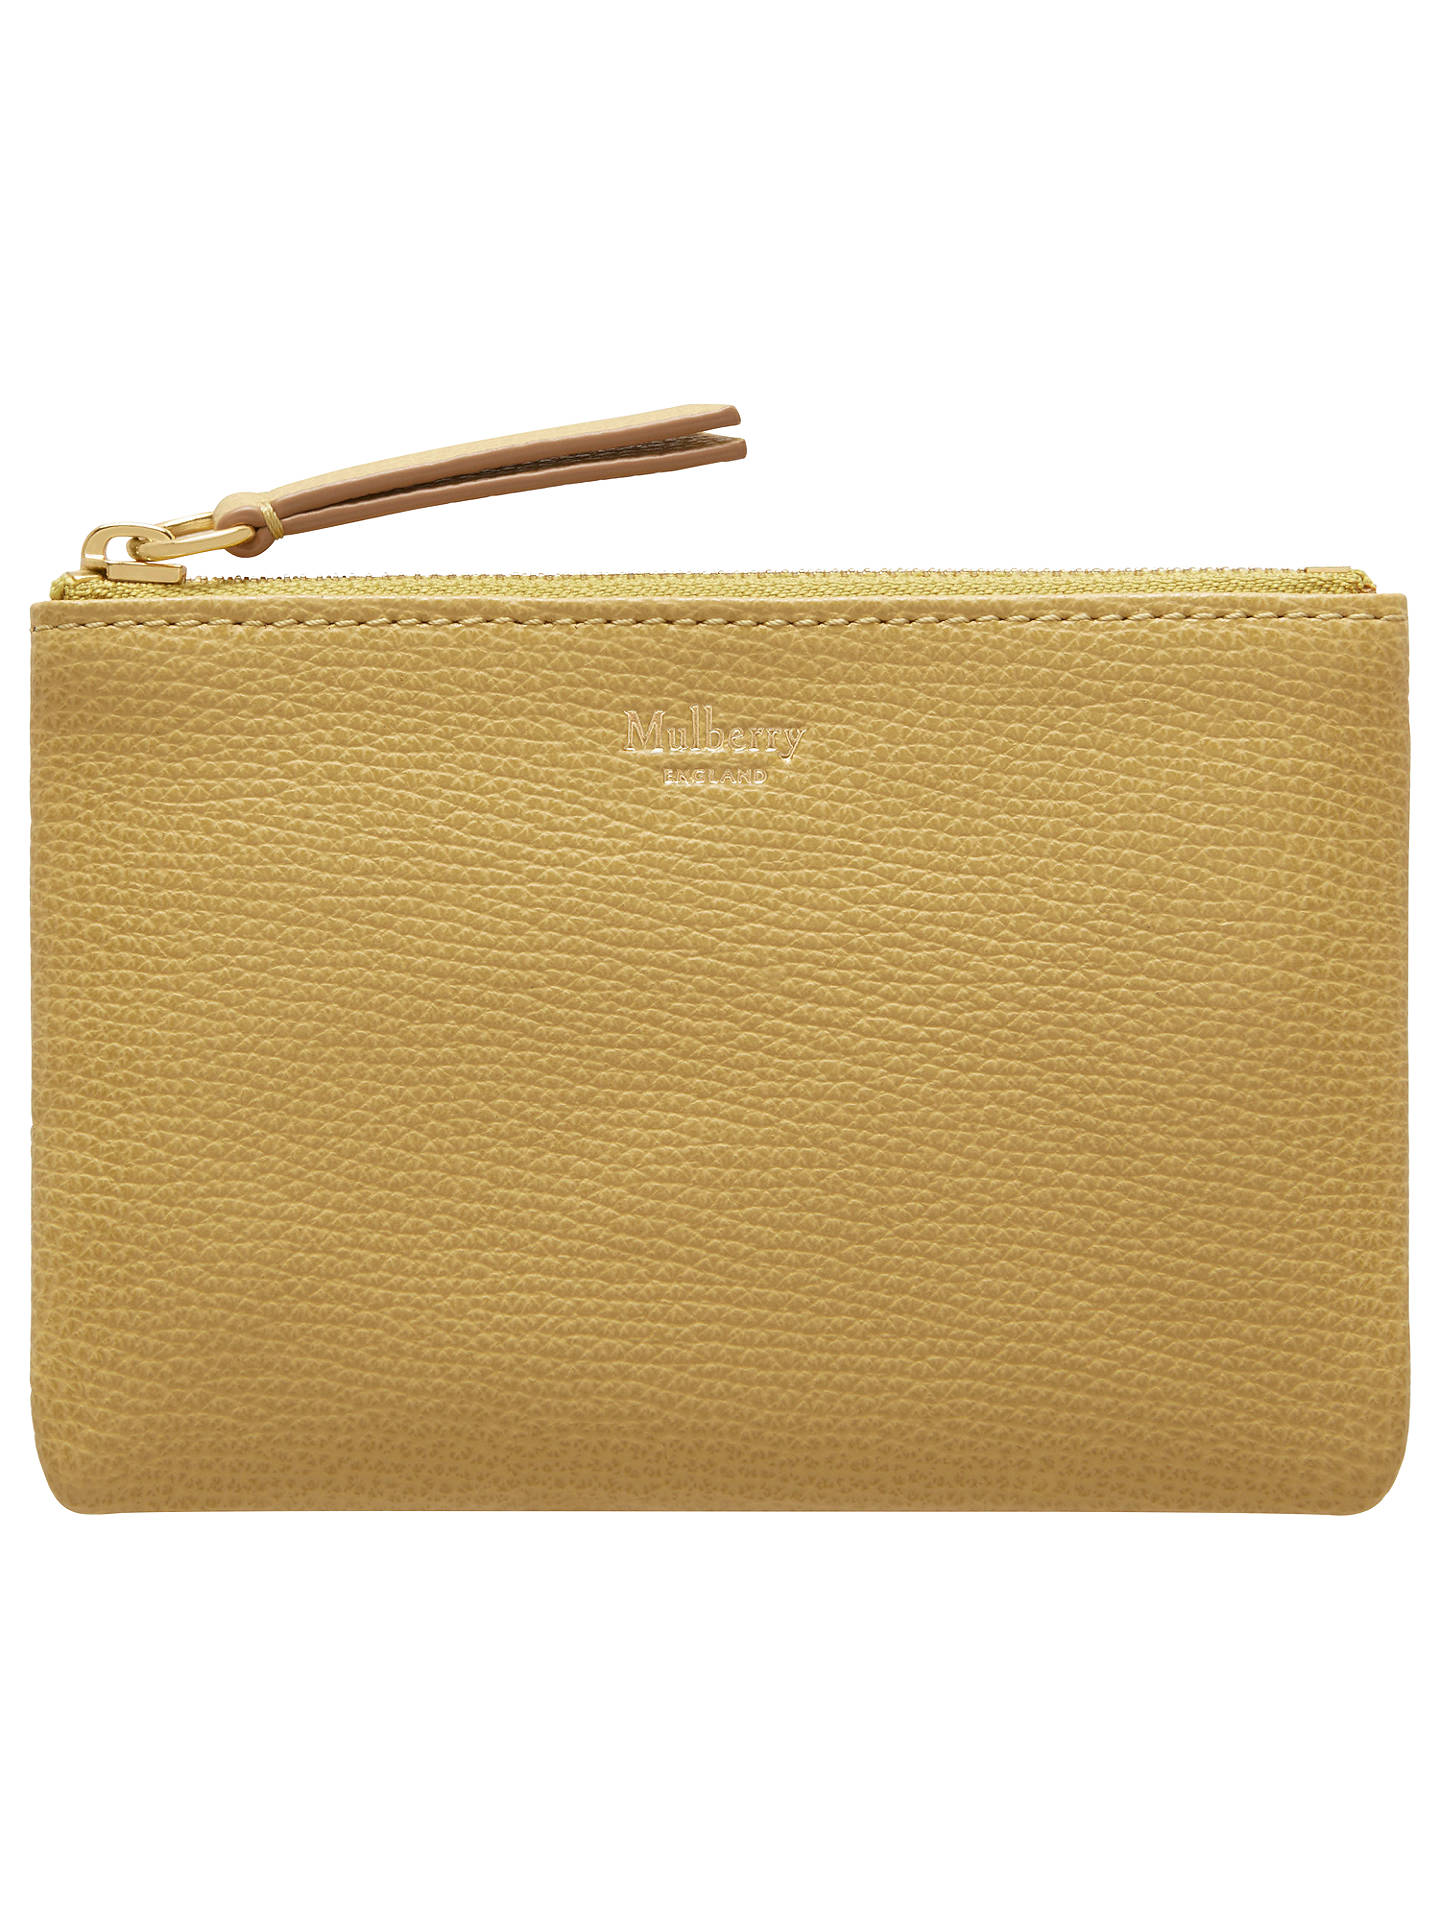 Mulberry Small Classic Grain Leather Zip